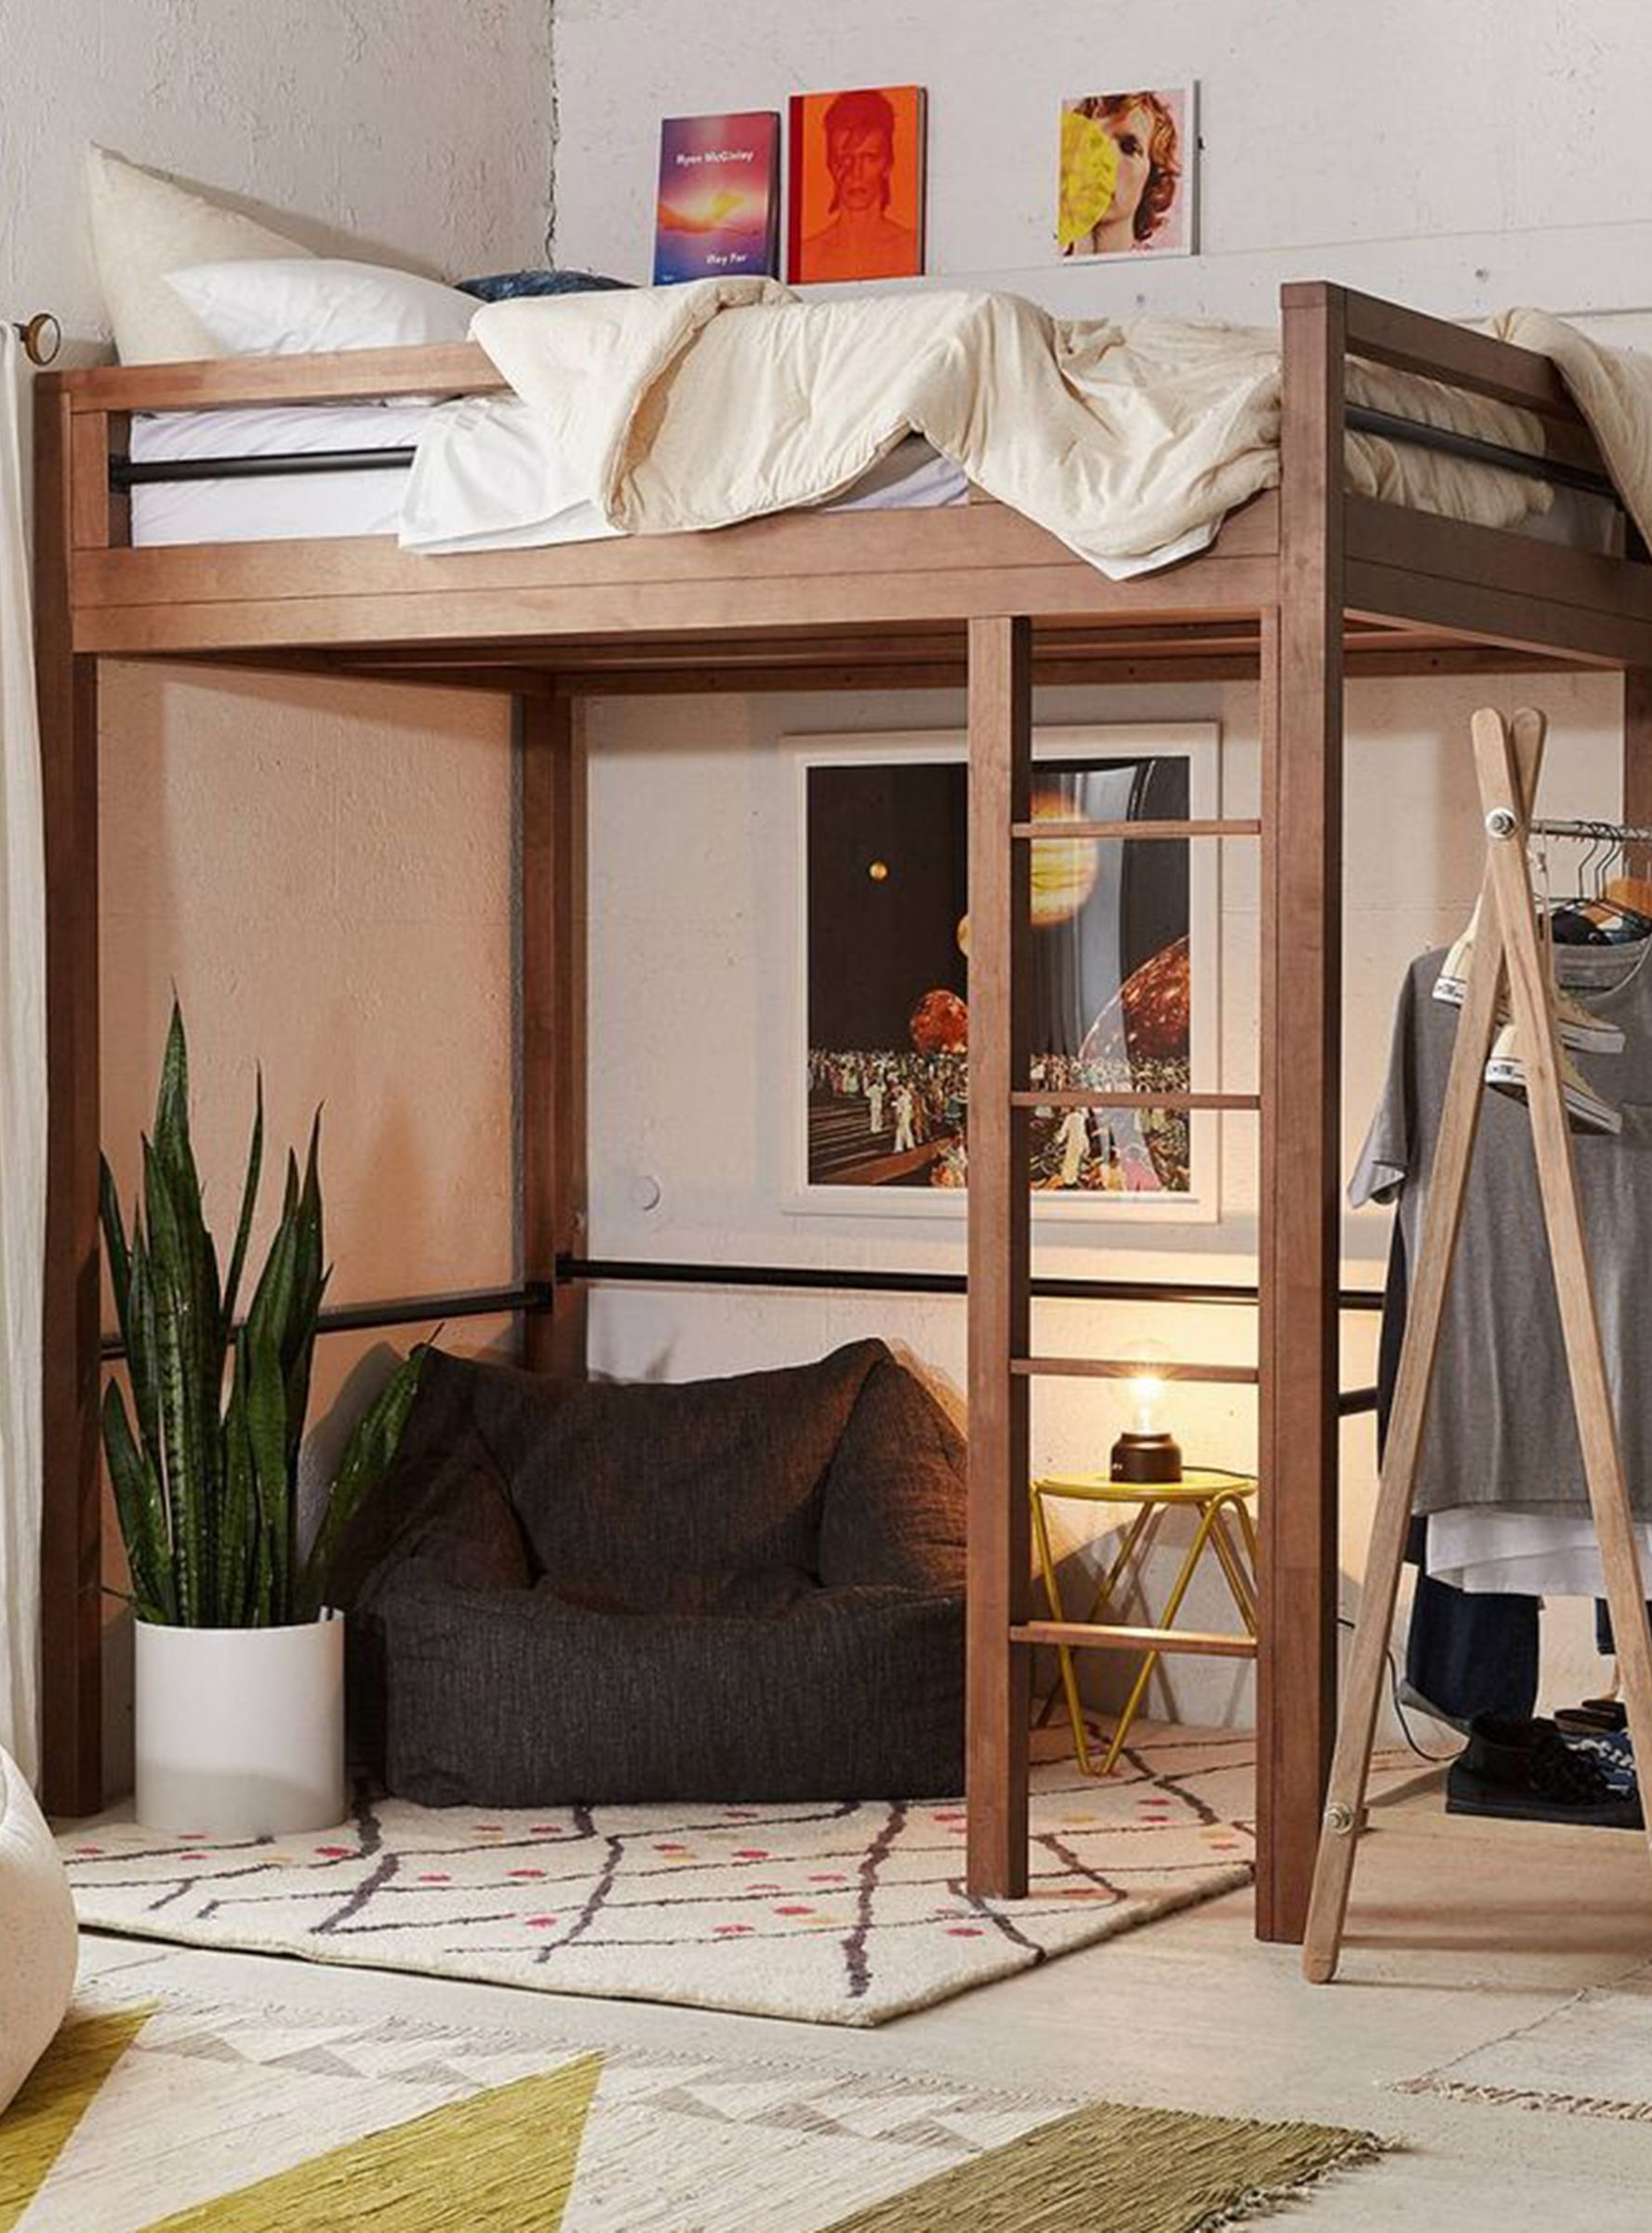 Queen loft bed ideas   Decorating Ideas For Your GrownUp Loft Bed refinery  pokój